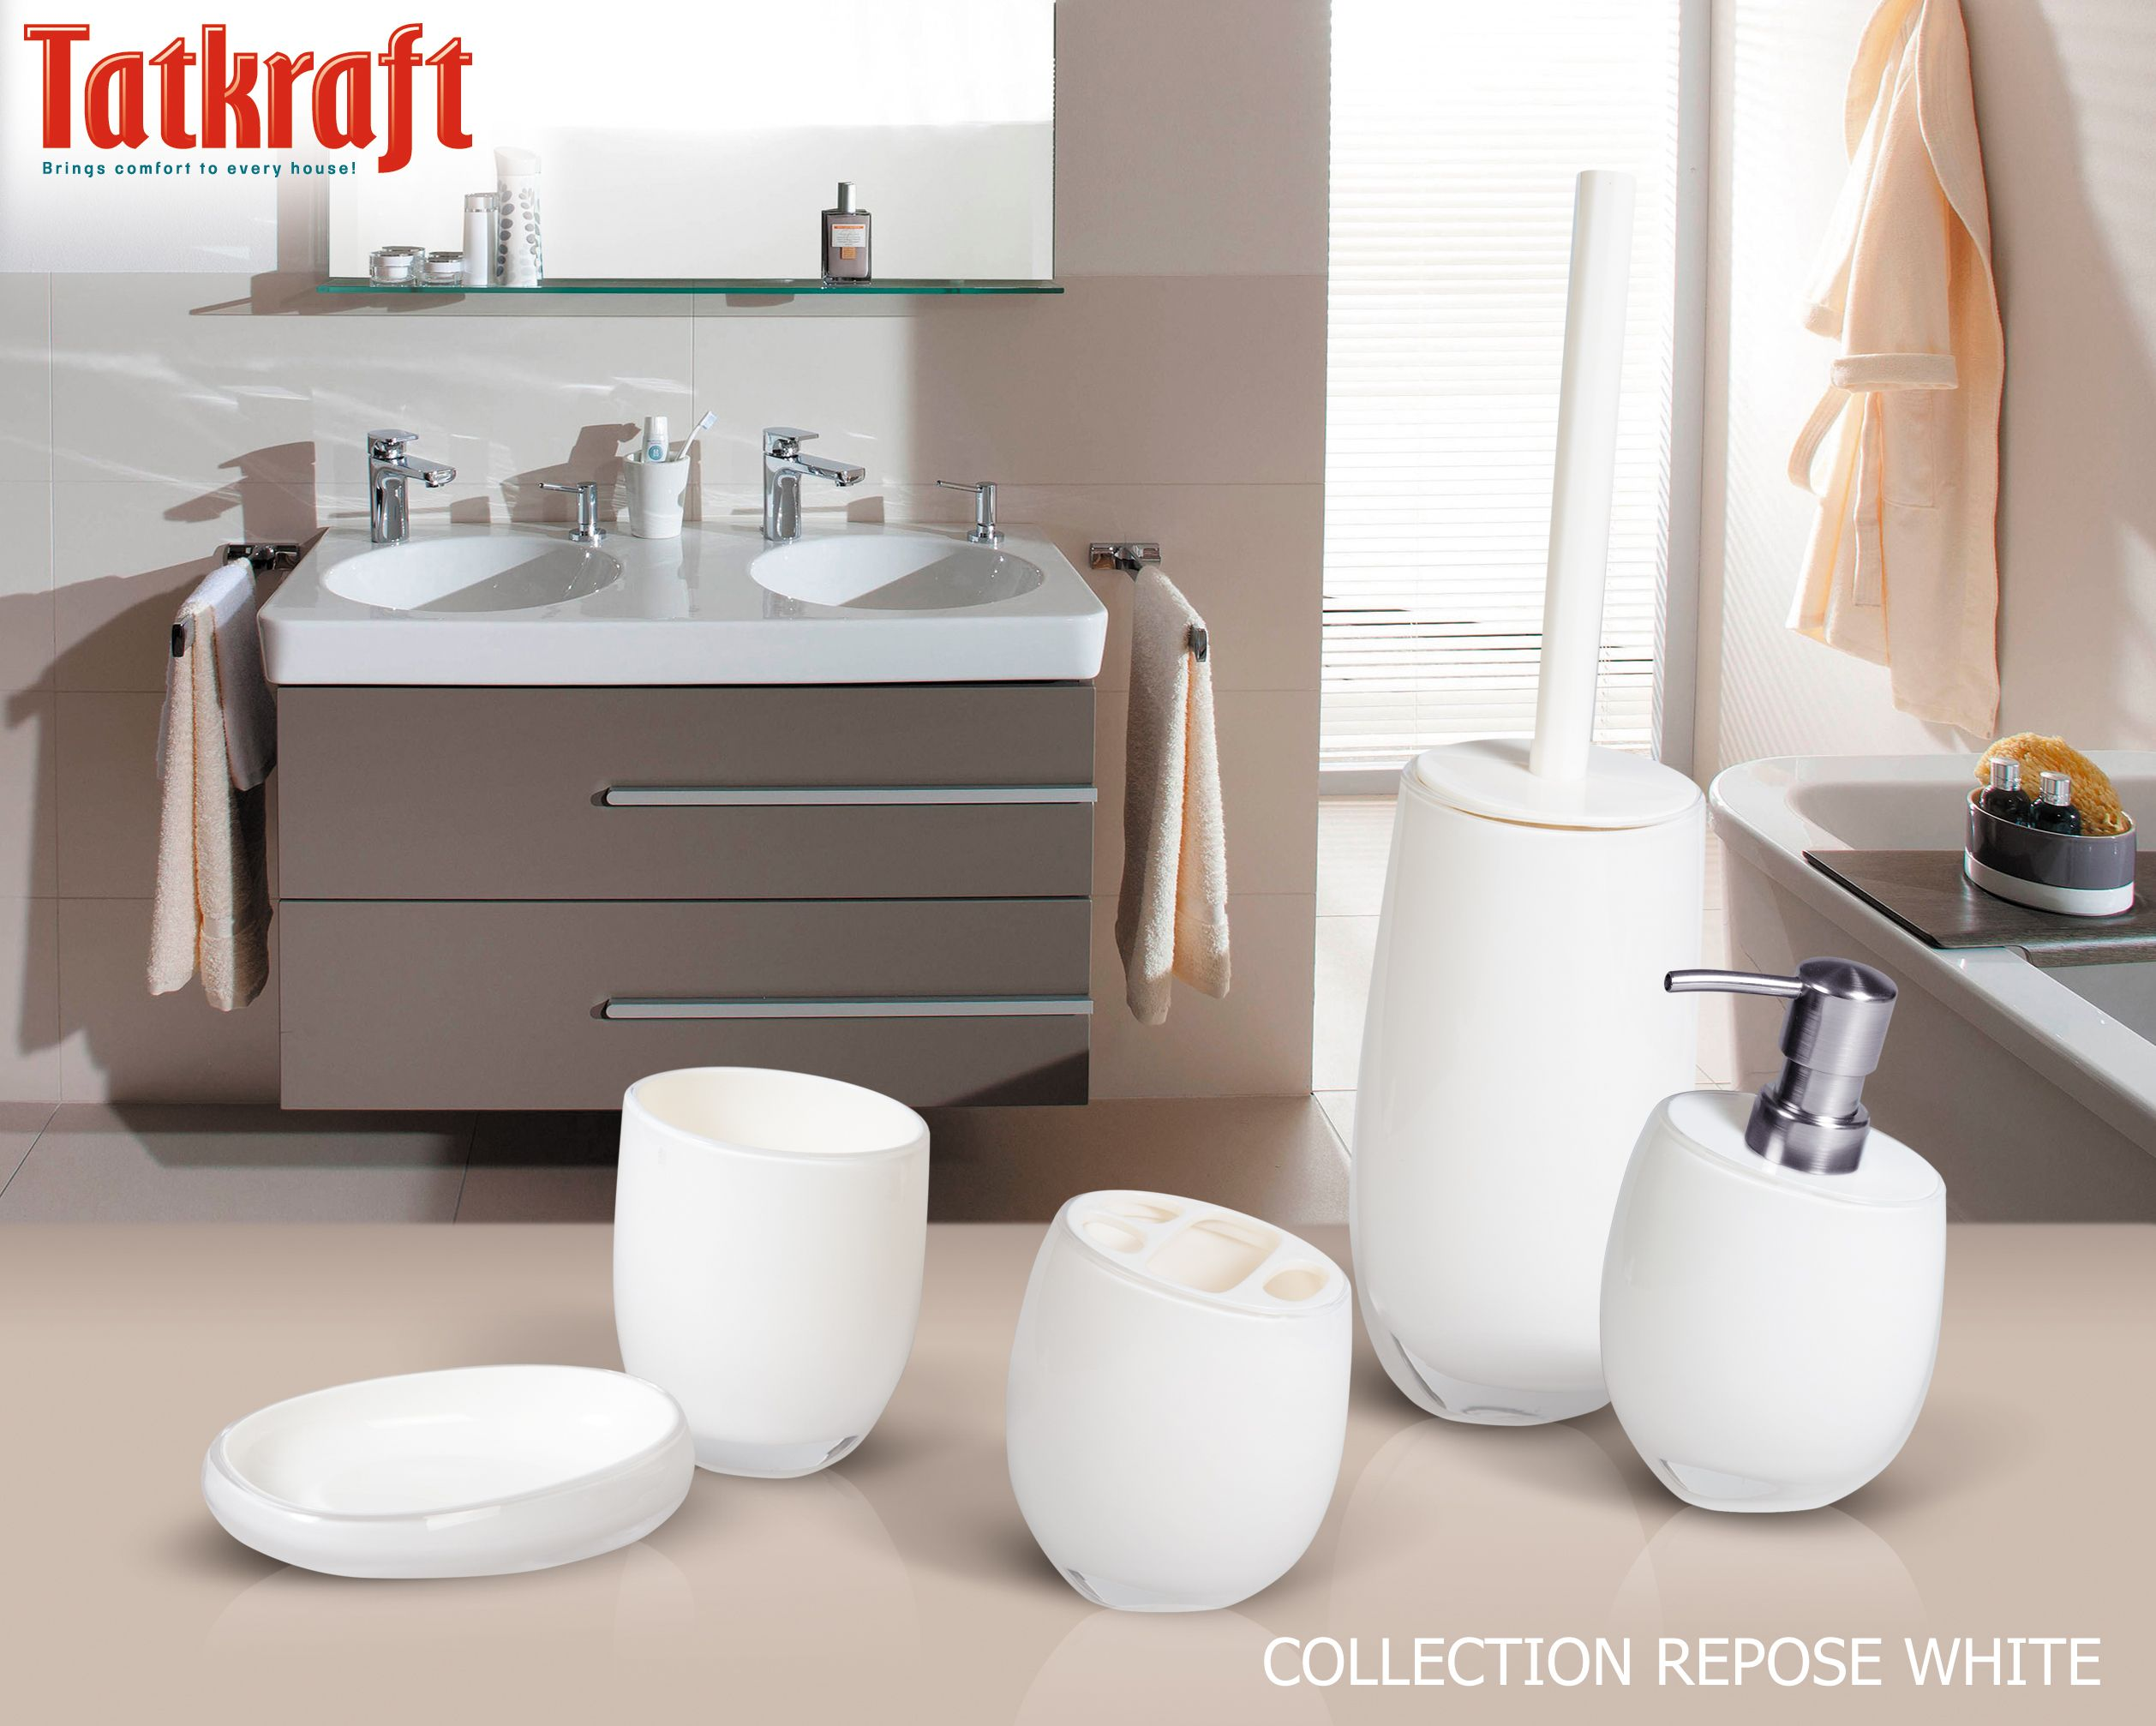 collection repose white from tatkraft amazon uk acrylic bathroom accessories wwwtatkraft